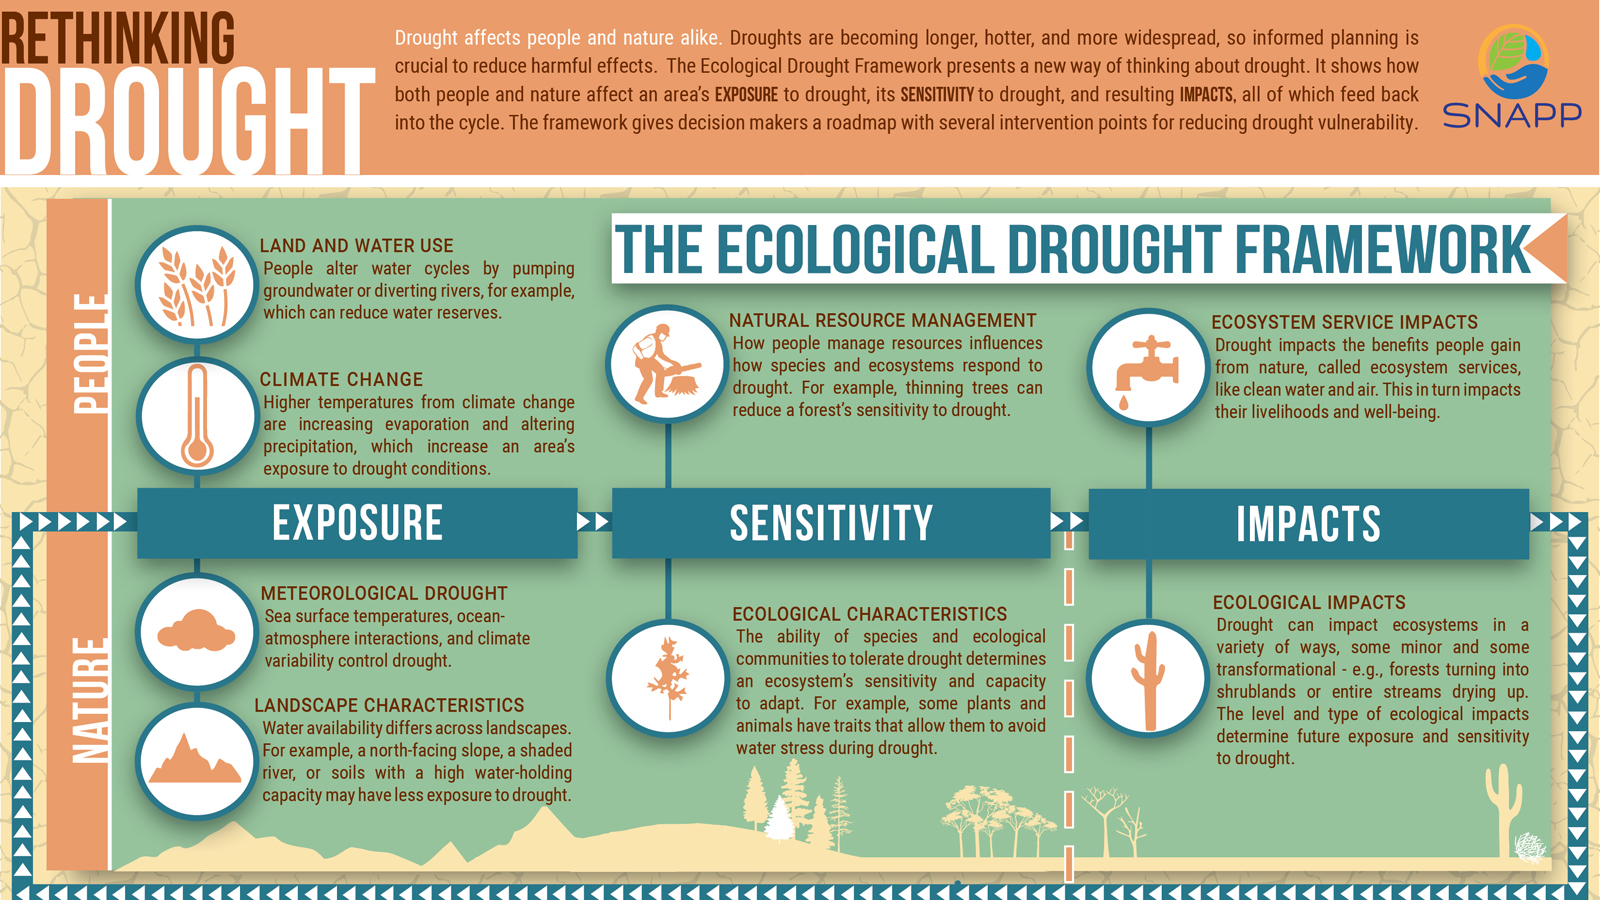 A team of researchers, including two from the University of Nebraska-Lincoln, have developed and proposed a new definition of drought that integrates ecological, climatic, hydrological, socioeconomic and cultural dimensions of drought.  This novel approach to thinking about drought may help decision makers better prevent and respond to drought impacts.